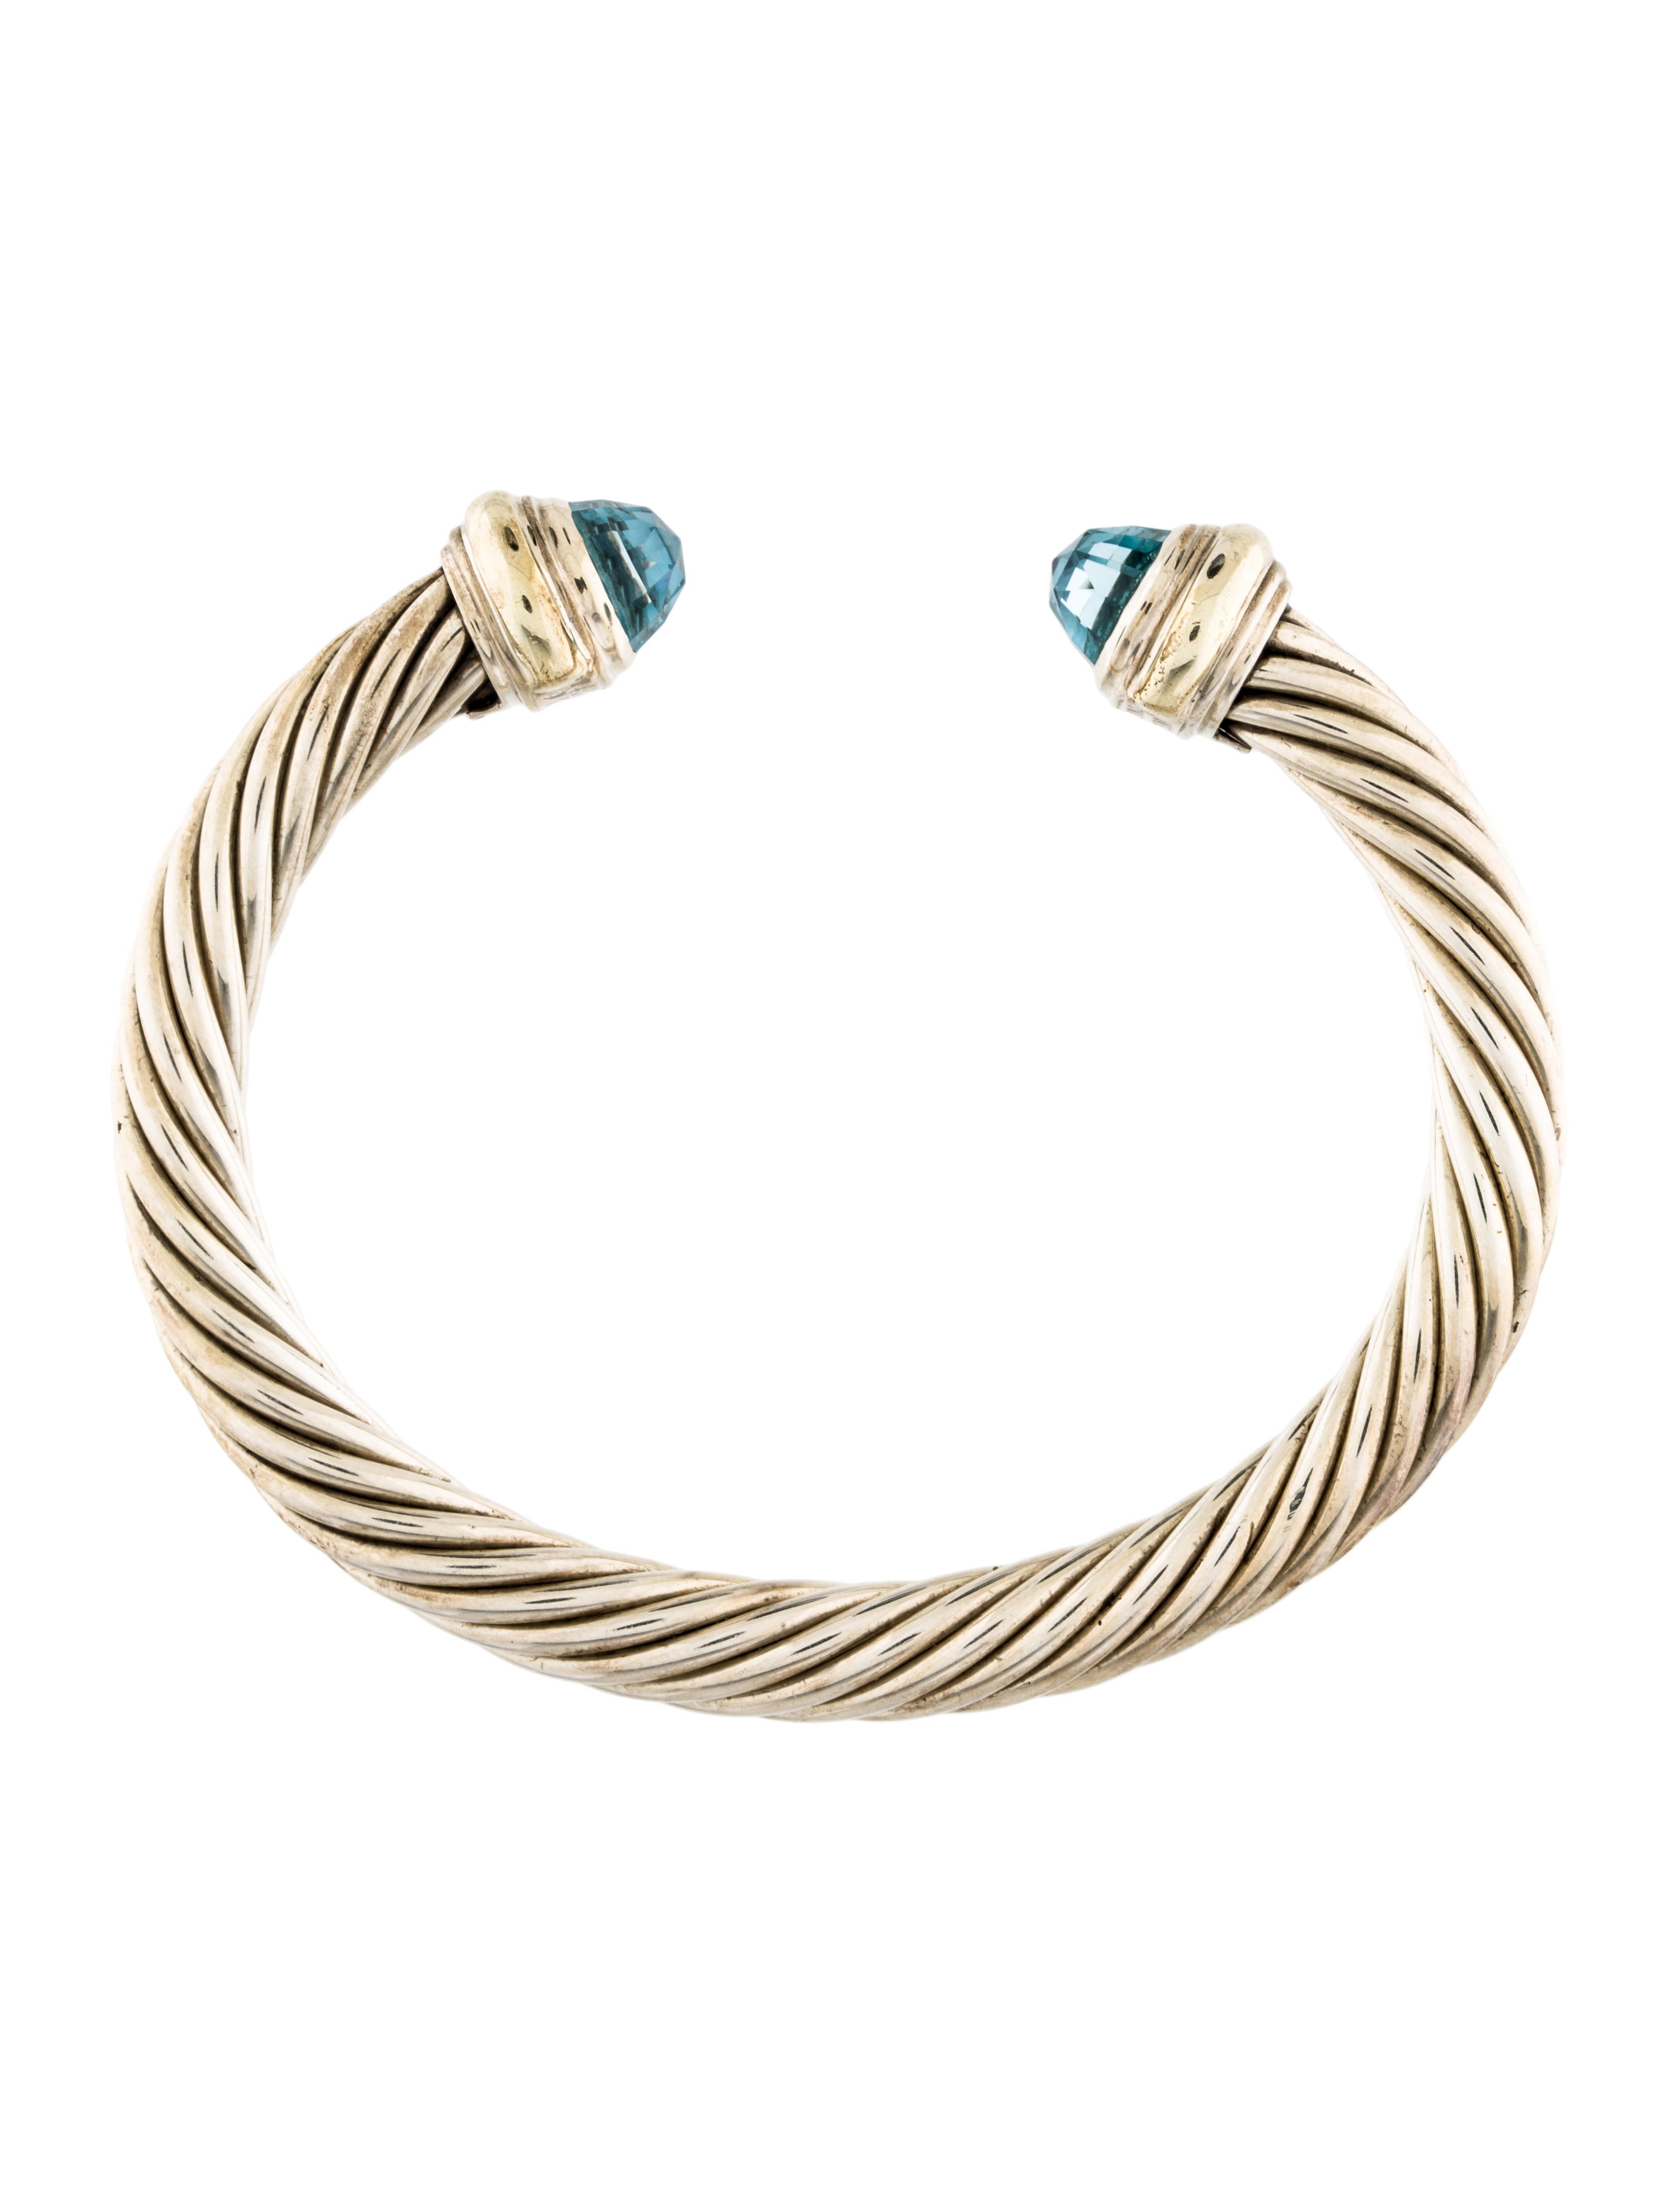 David yurman topaz cable cuff bracelet bracelets for David yurman inspired bracelet cable